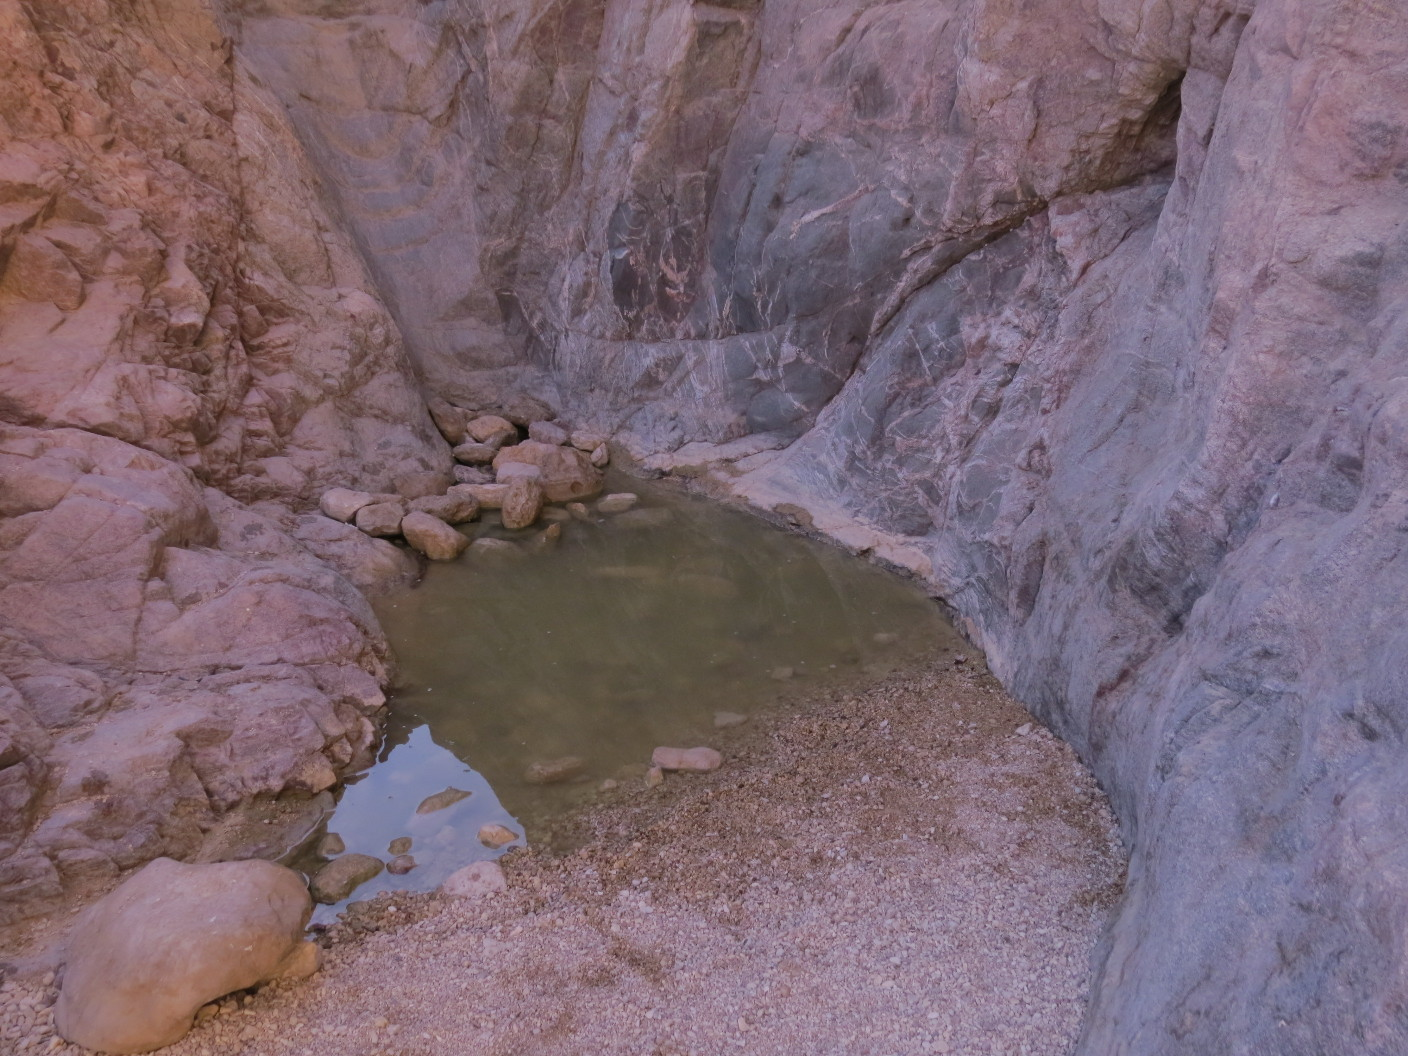 Rock rain pool (Gev) in Painted Desert, Arava, Israel